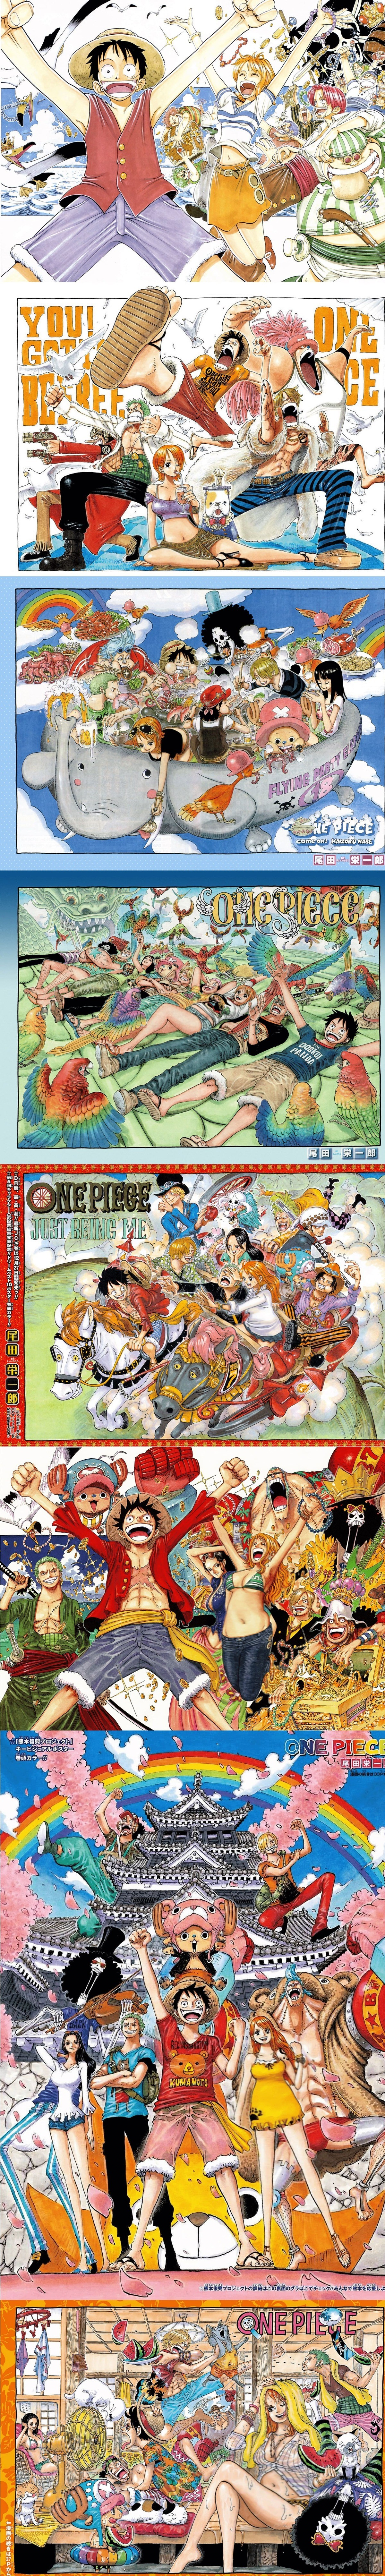 From Chapter 1 to 904...and still going on. .. Is Nami pregnant in that last image?